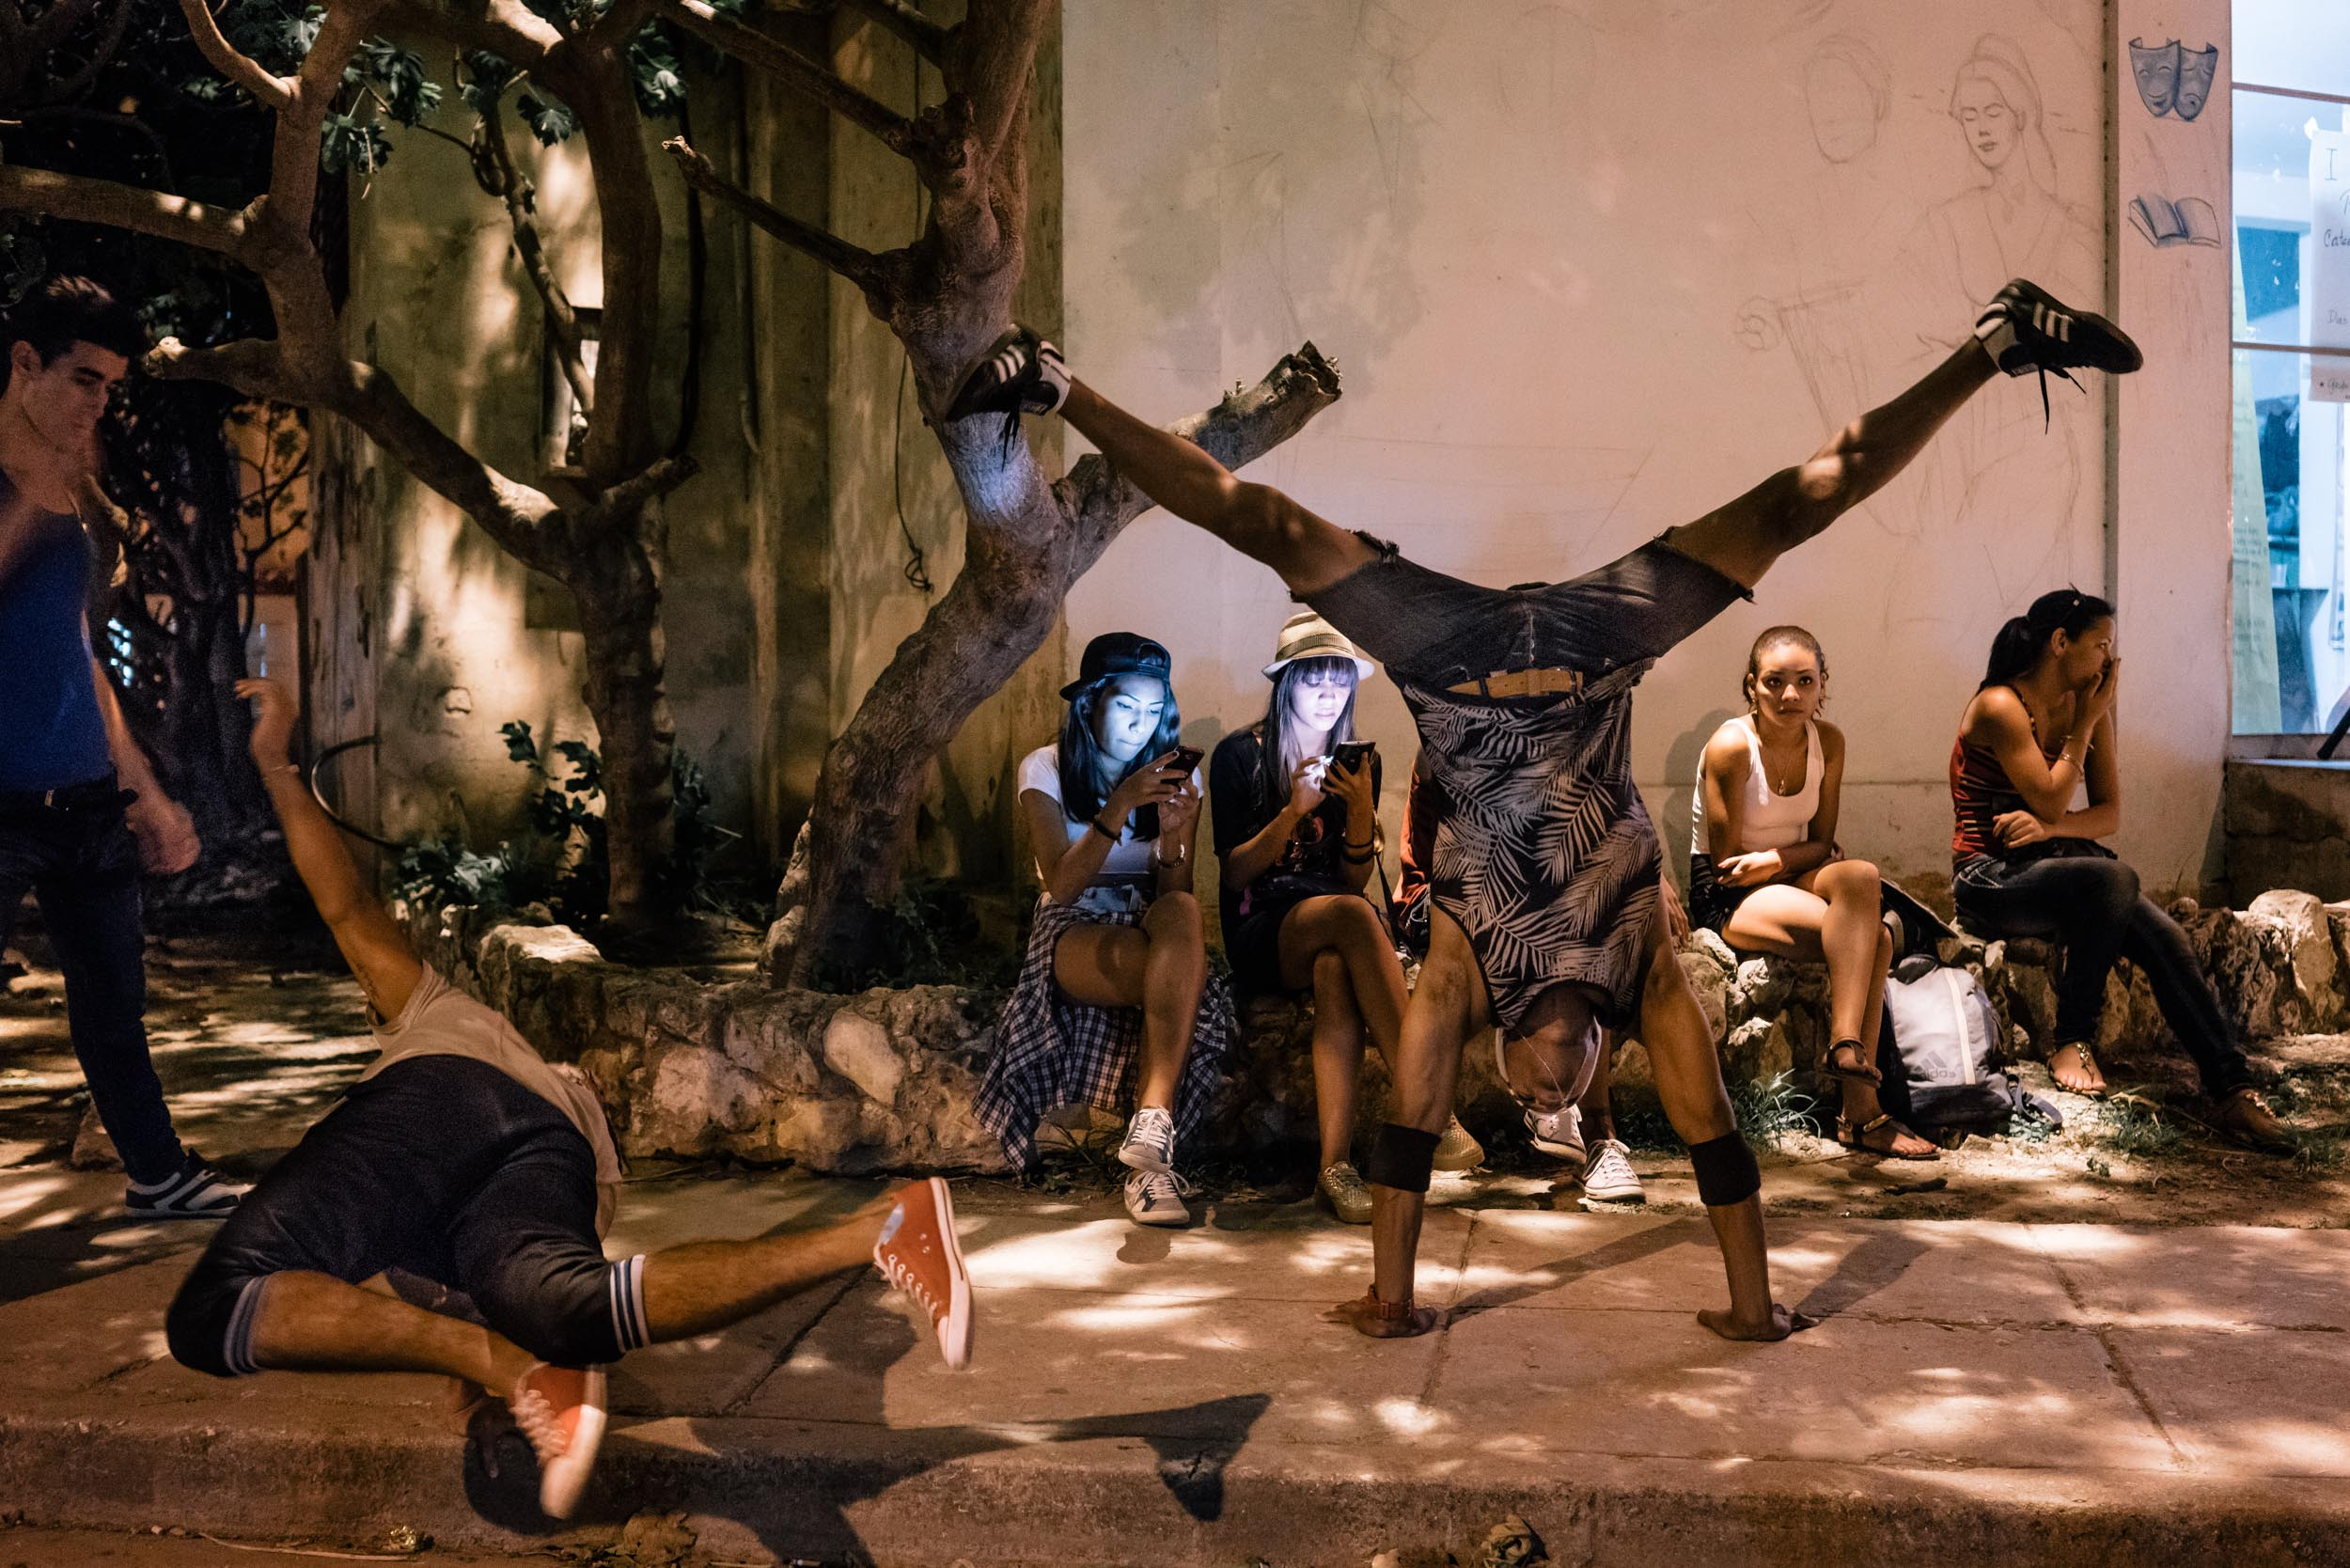 dancers stretch and warm up in Havana